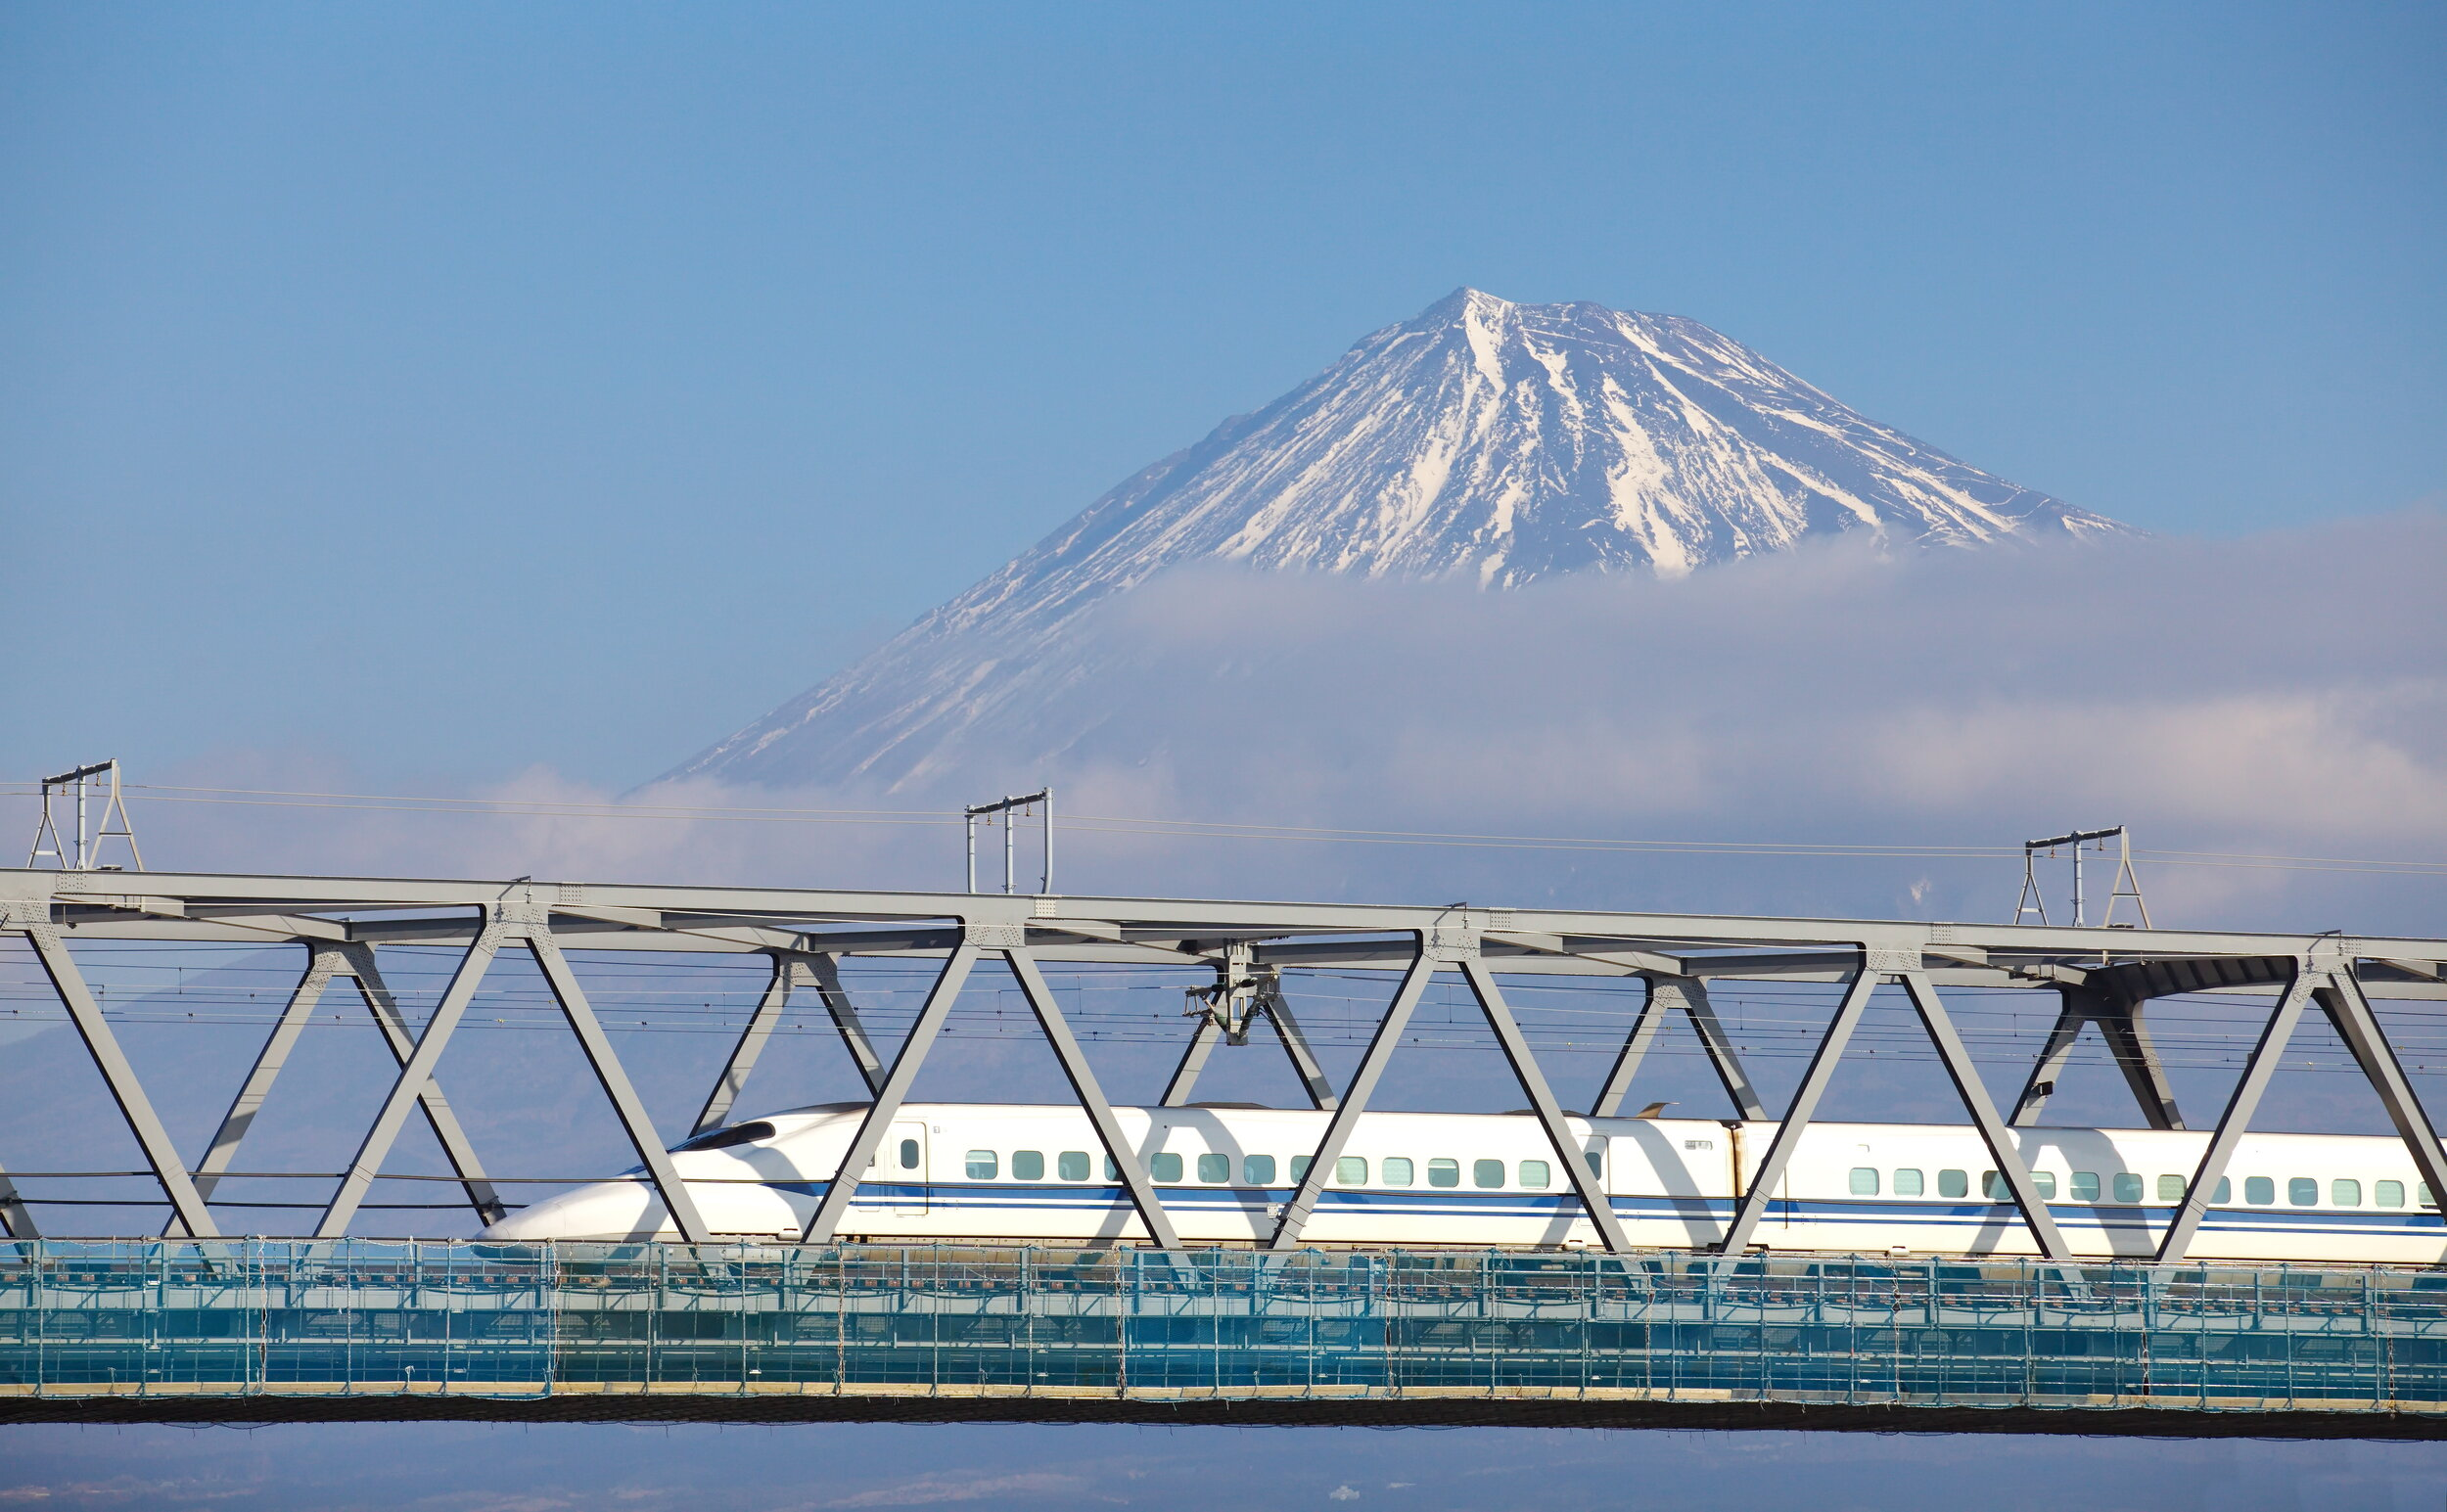 Japan Rail Pass Prices Set to Rise